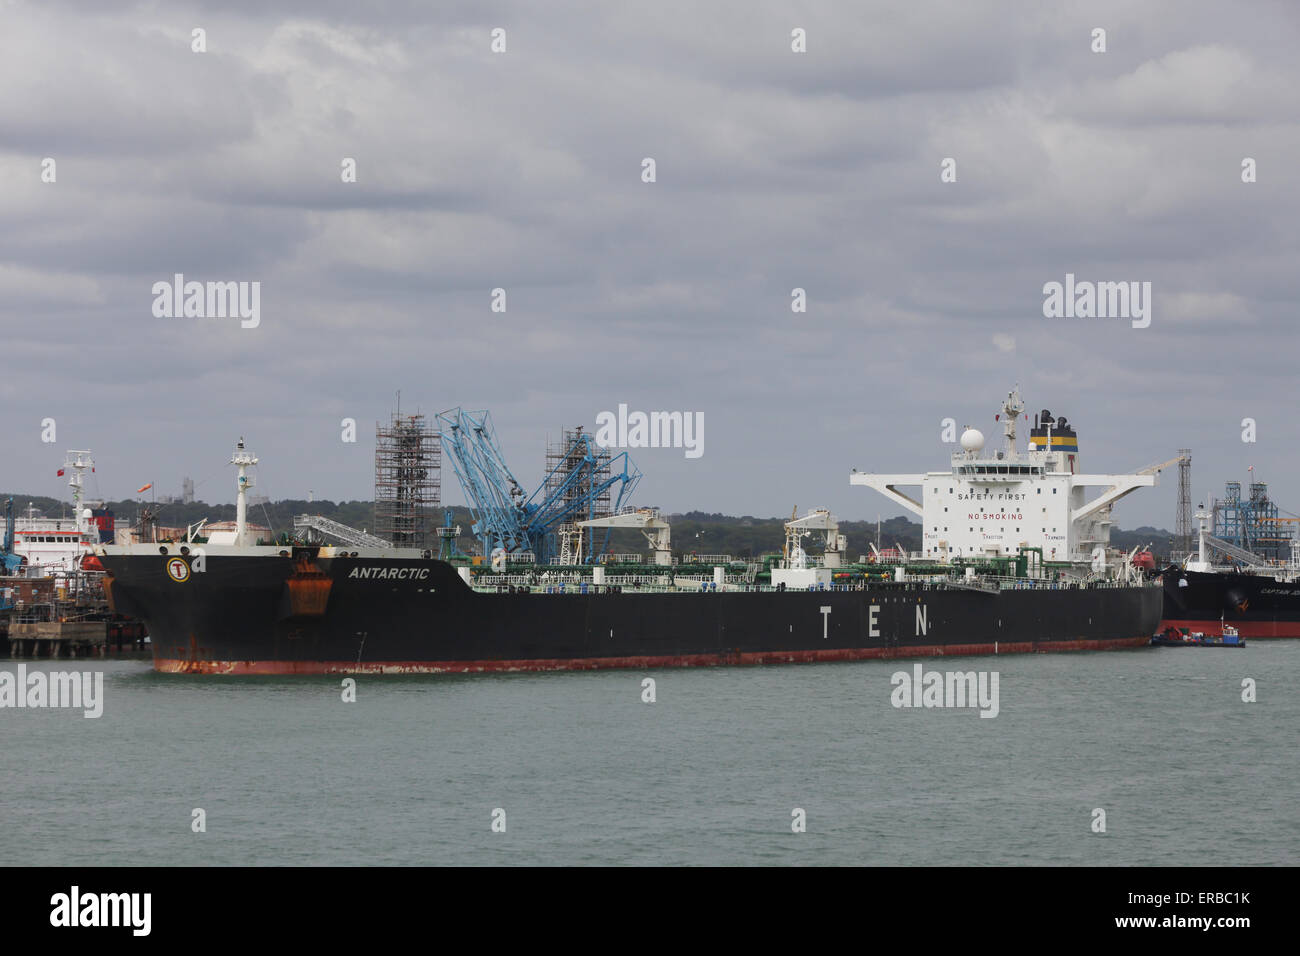 Antarctic Oil tanker ship pictured at Fawley Refinery near Southampton UK - Stock Image